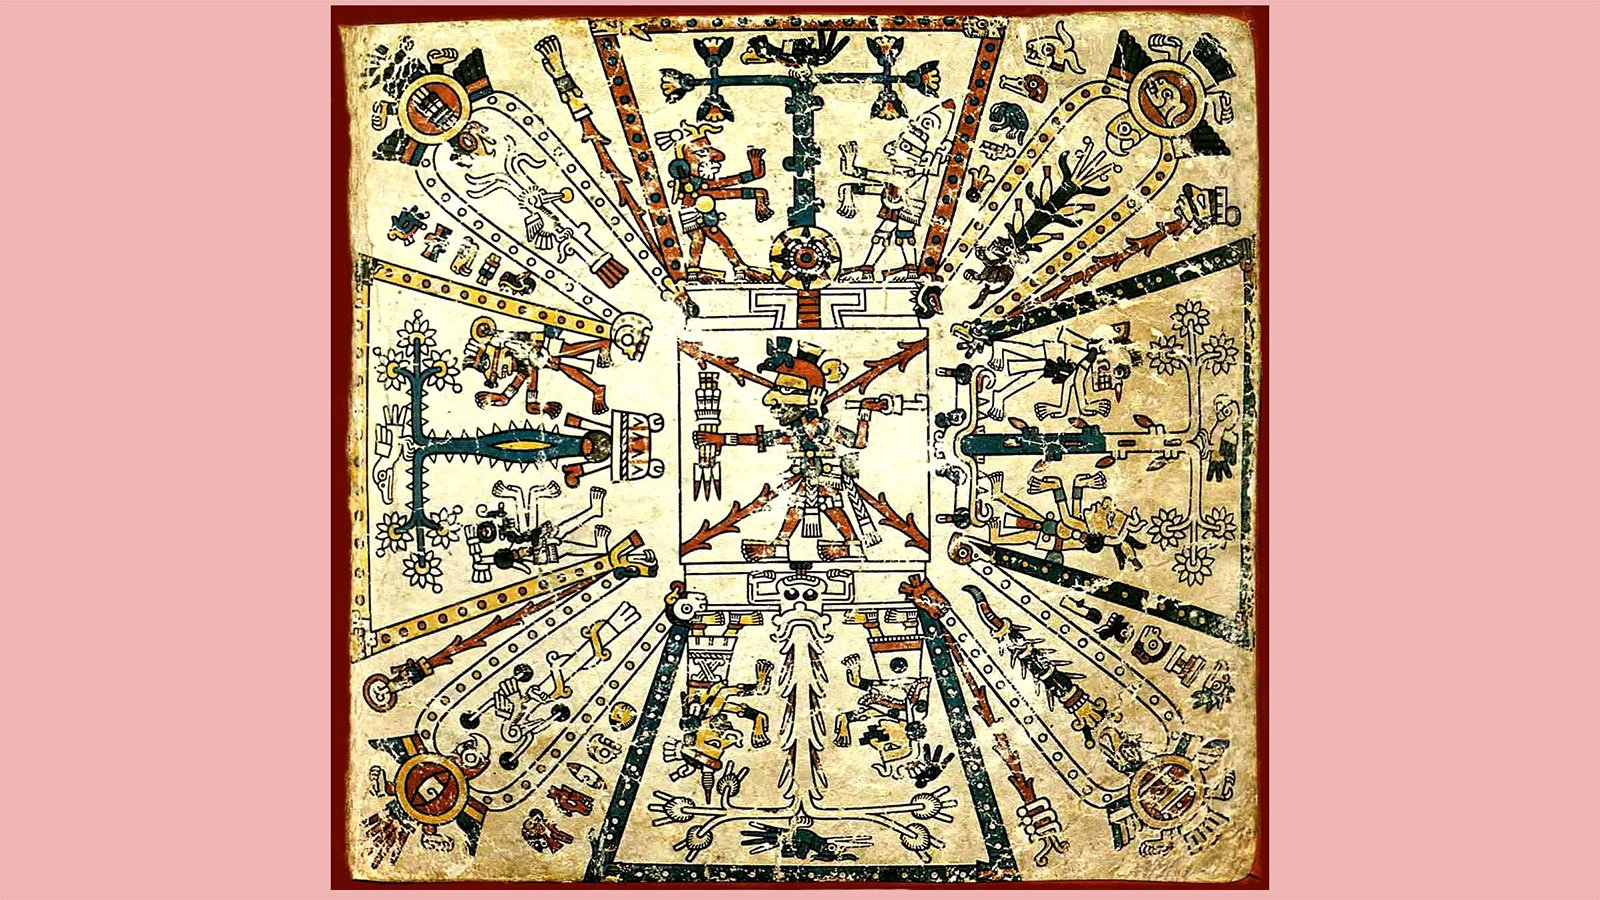 From the Codex Fejérváry-Mayer, an Aztec cosmological drawing with the god Xiuhtecuhtli, the lord of fire, and the calendar in the center with the other important gods around him, each in front of a sacred tree. Image courtesy of Creative Commons